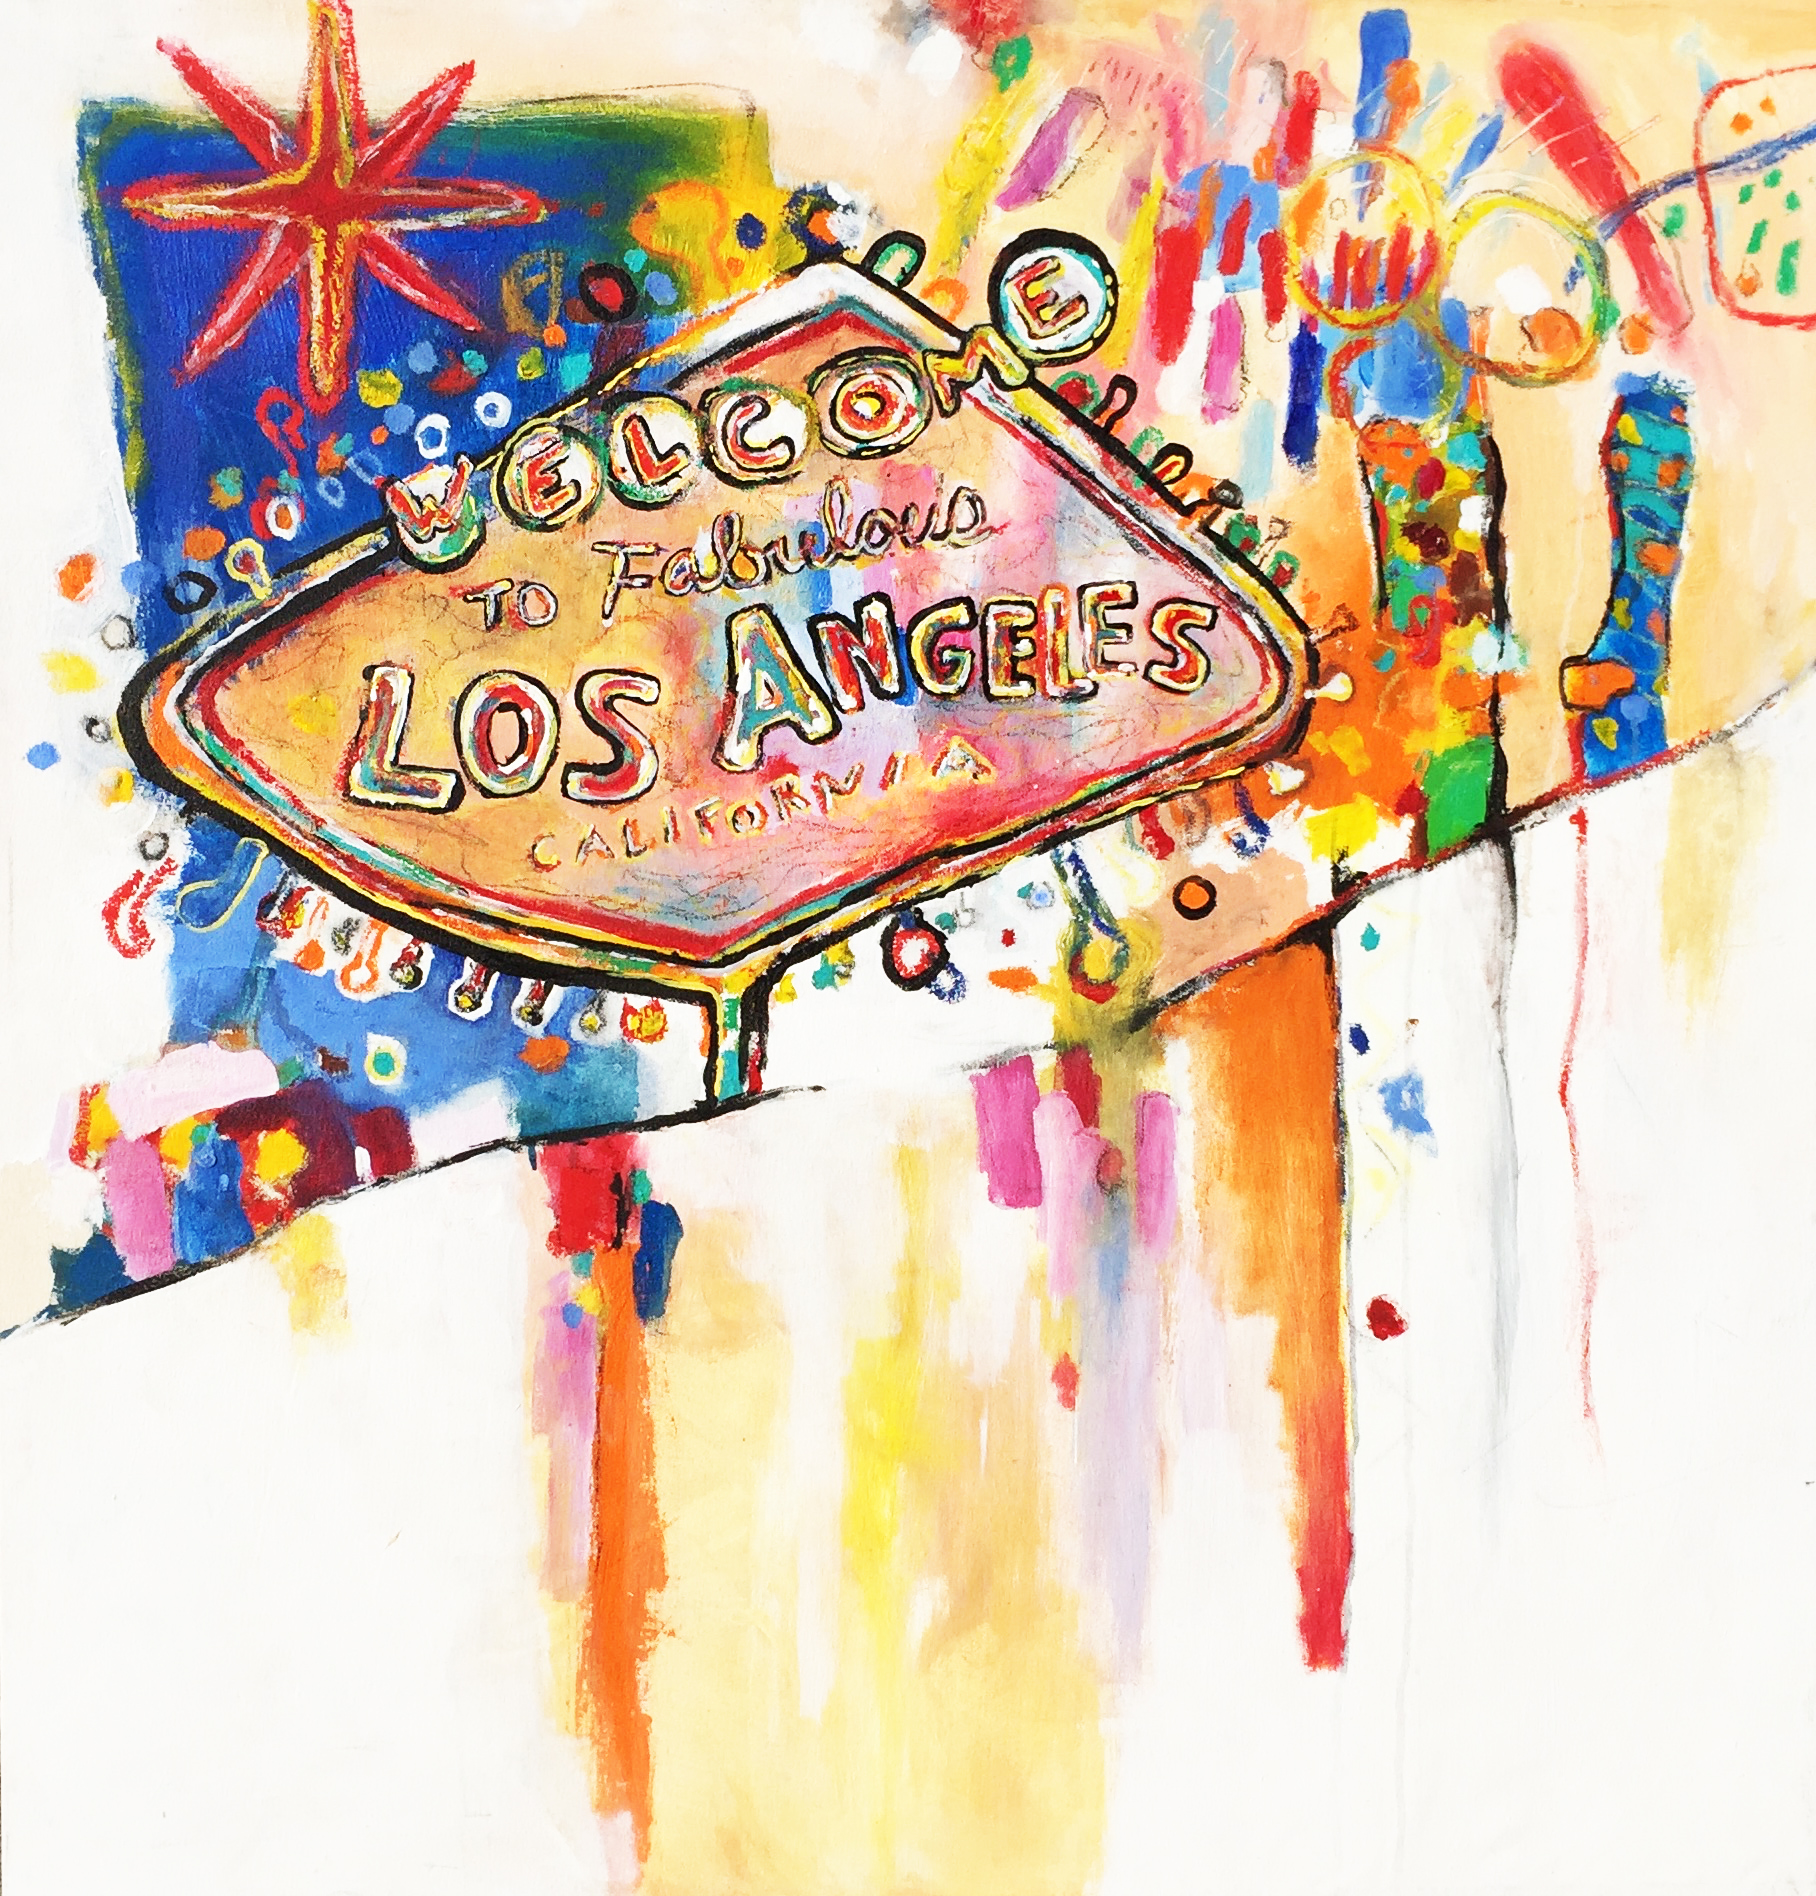 Las Angeles - Available for Purchase - Email info@annmcferran.com for inquries